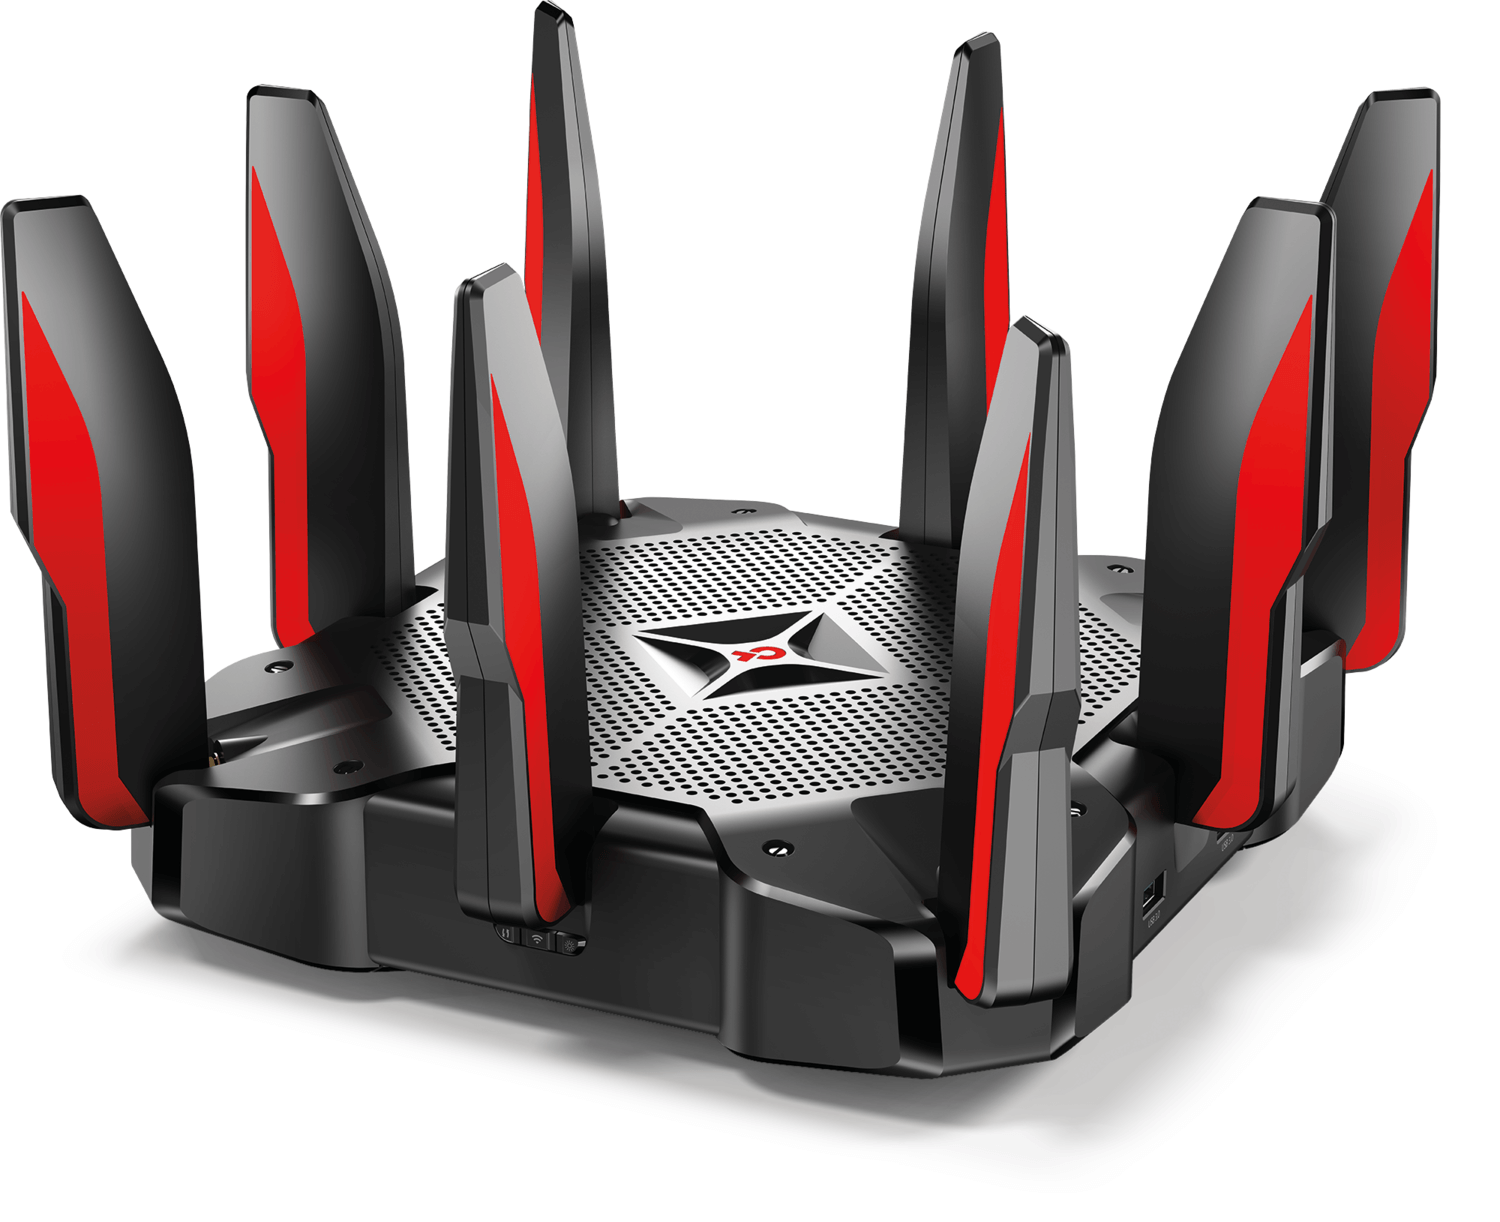 TP-Link launches its most powerful gaming router to date